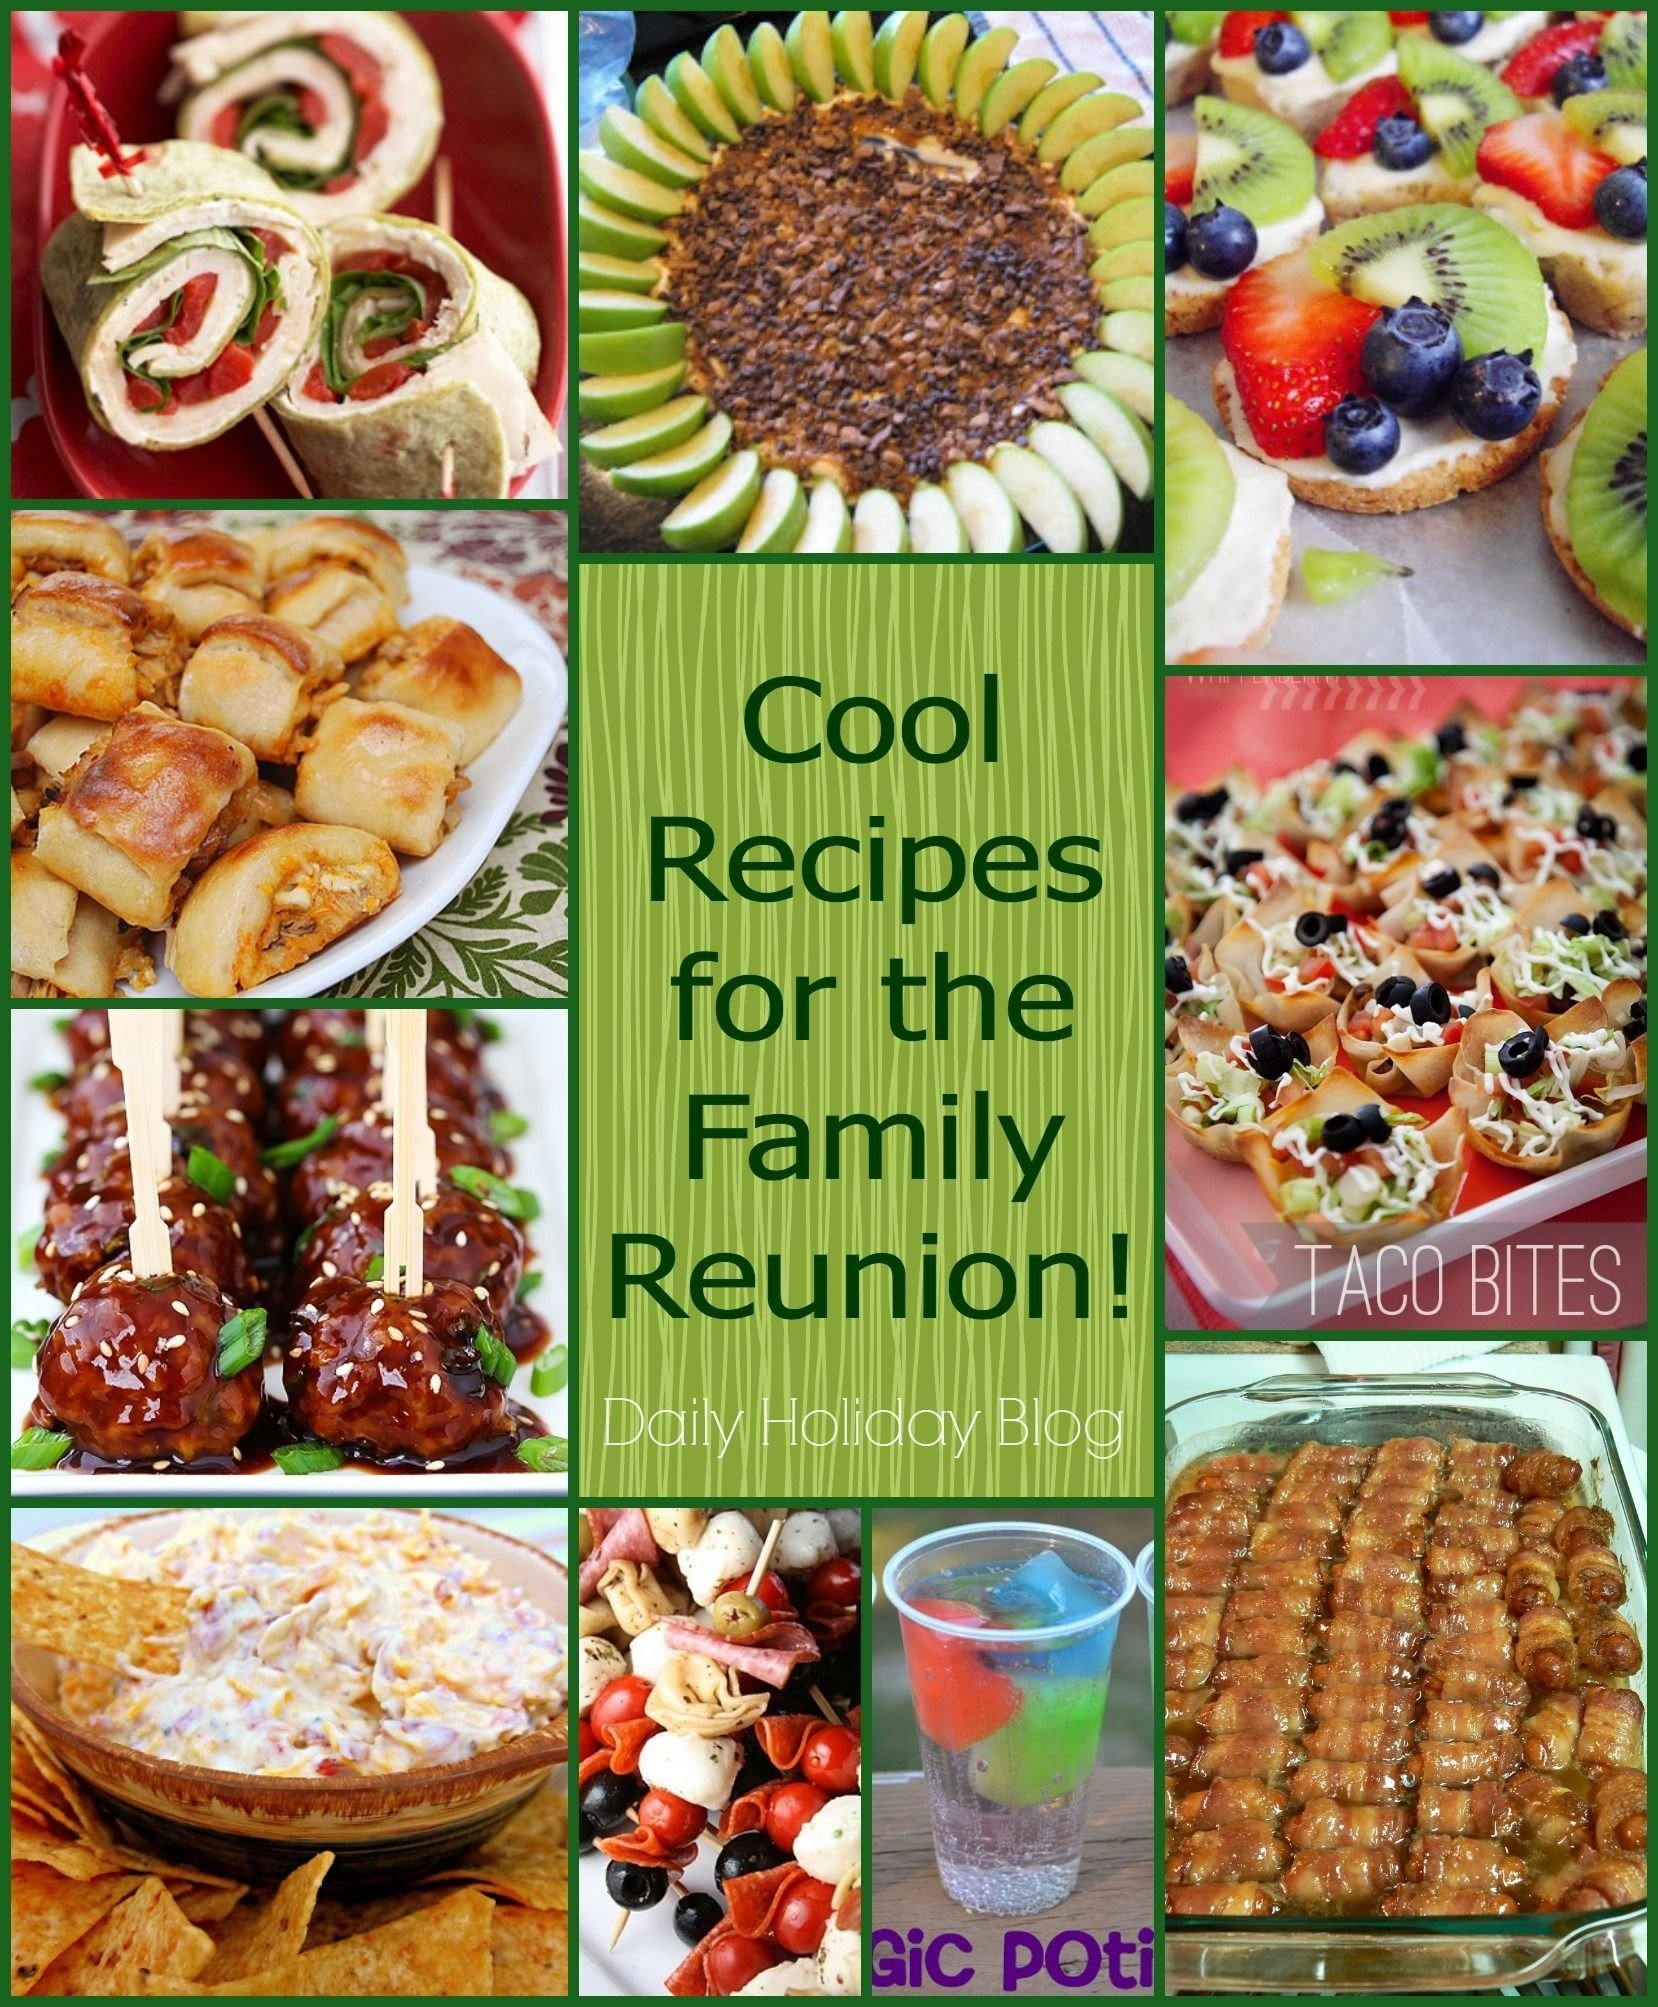 10 fabulous family reunion menu ideas! @dailyholidayblg #recipes